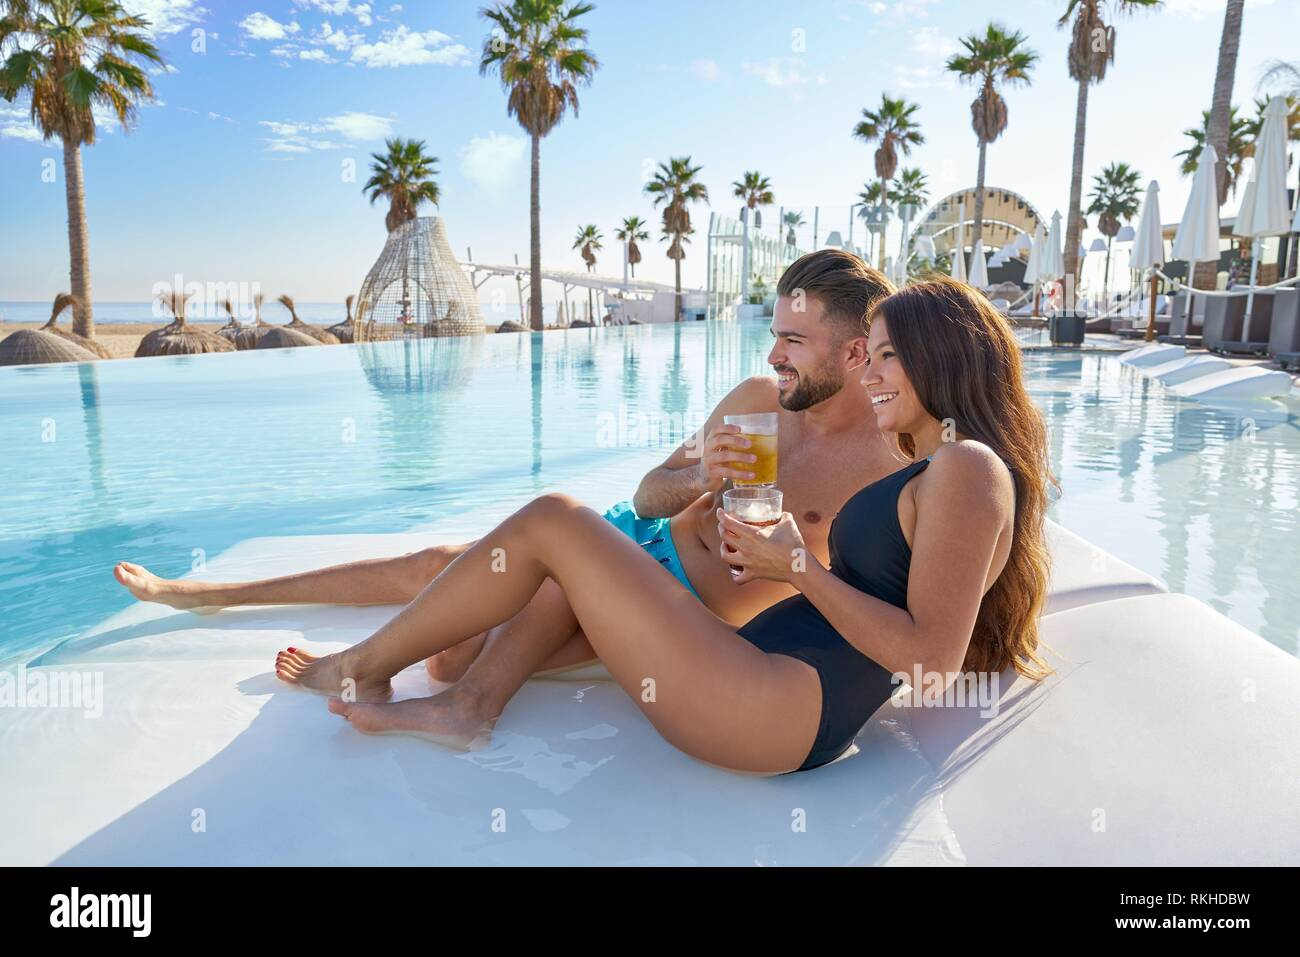 Young tourist couple on infinity pool hammock at resort on the beach drinking soda. - Stock Image